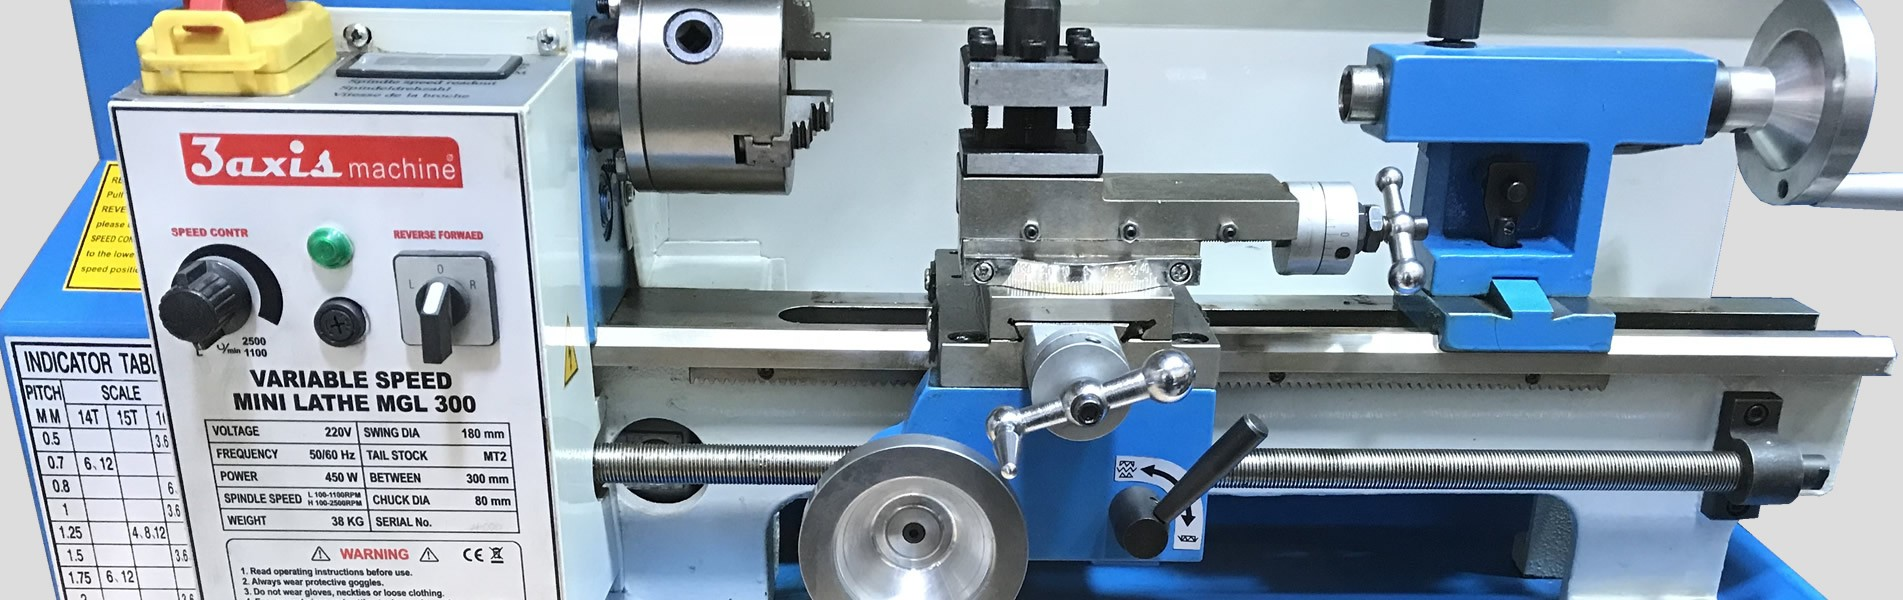 Metal Lathe Machines